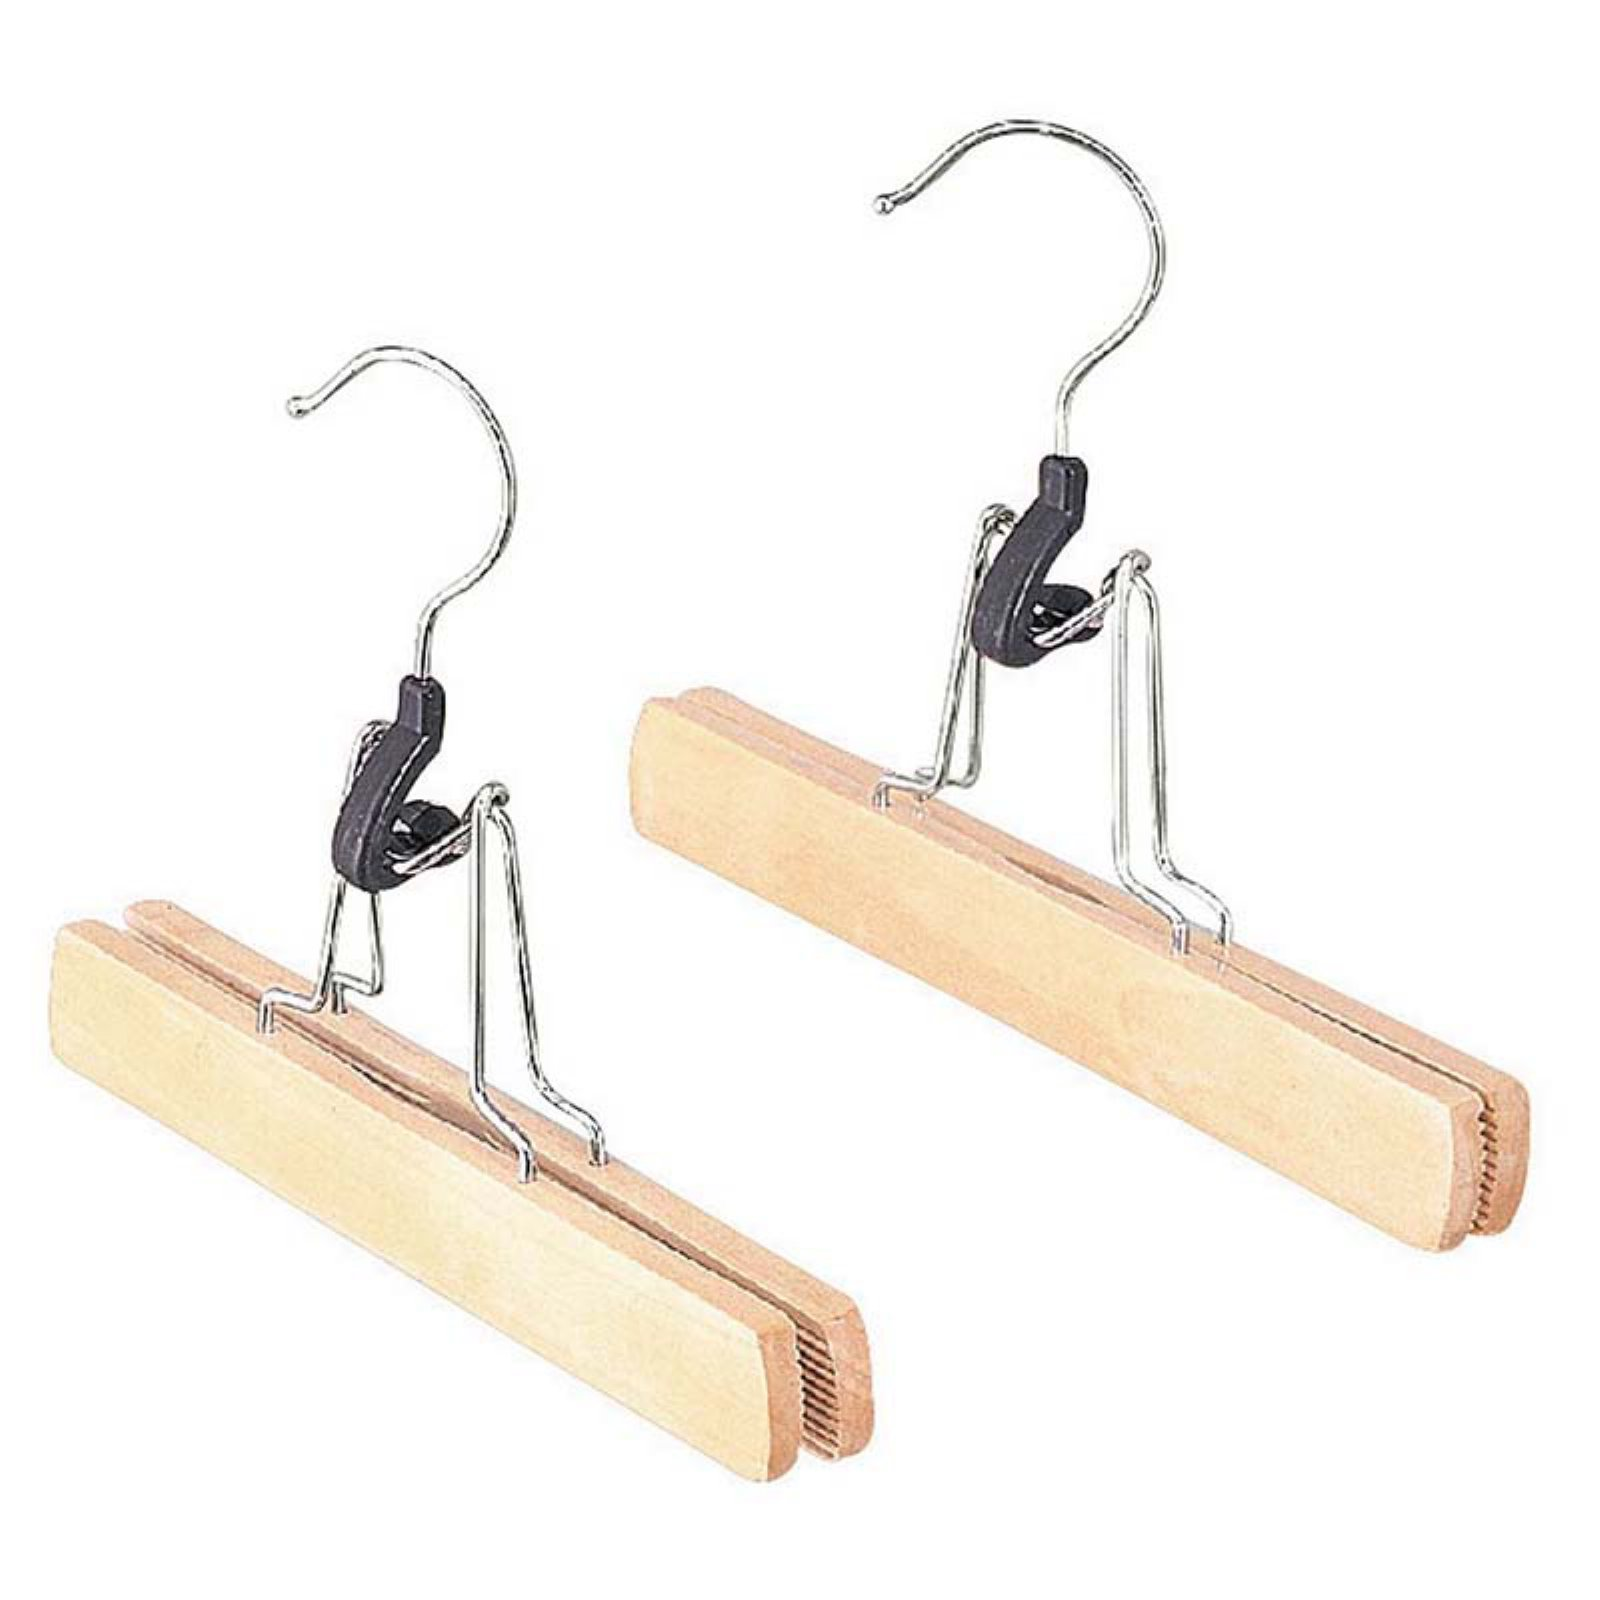 Whitmor 6026-310 Natural Wood Slack Hanger